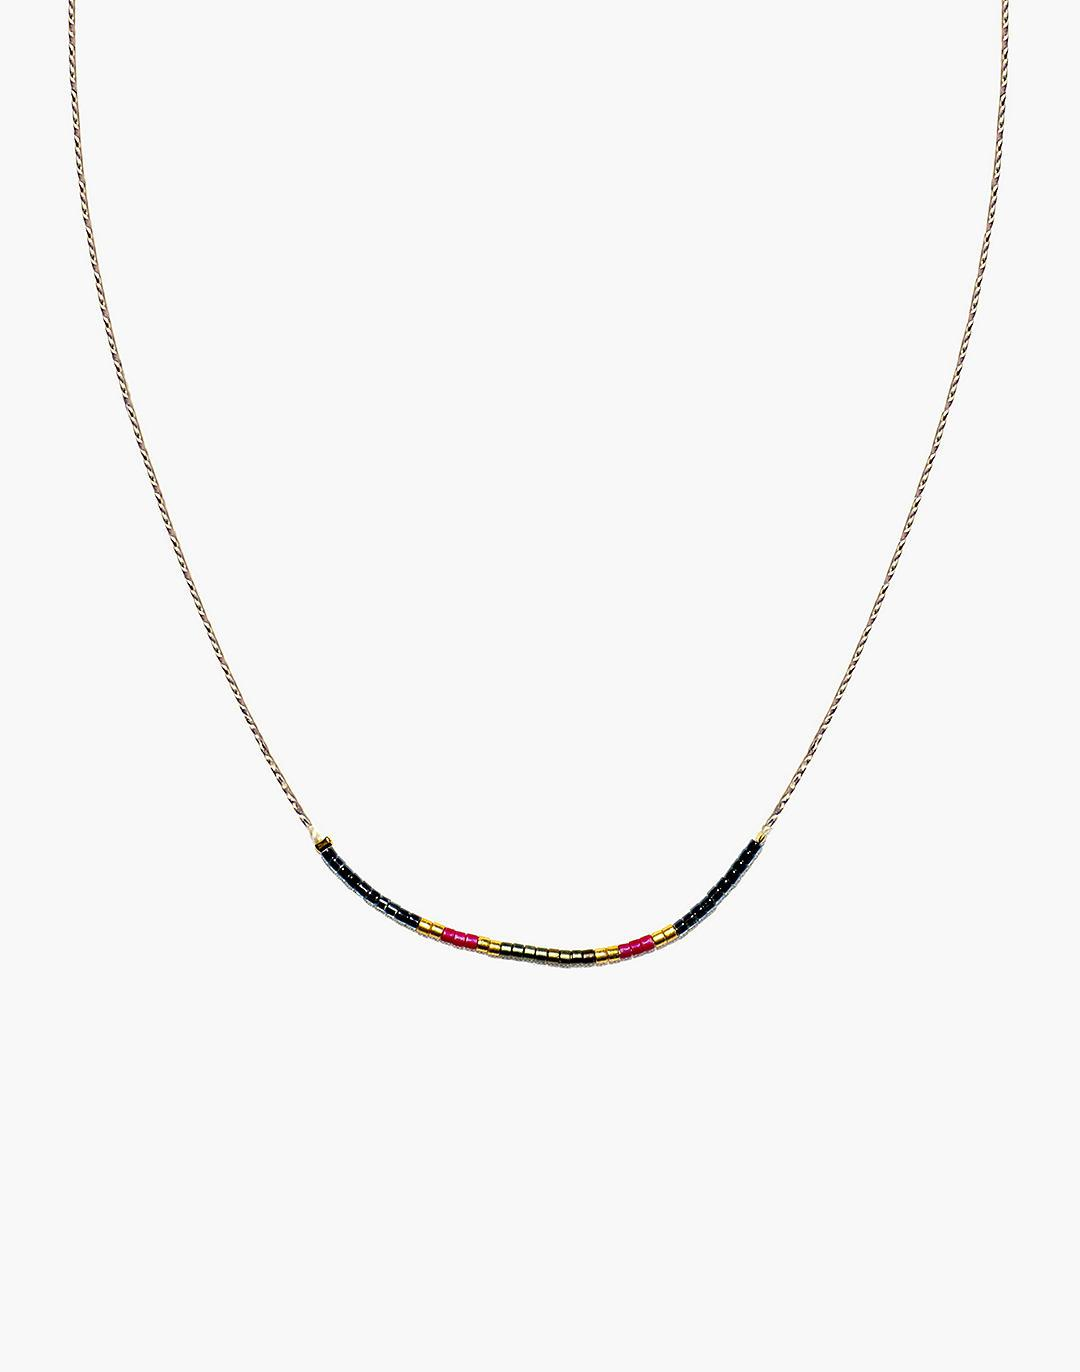 Cast of Stones Beaded Intention Necklace in Red Multicolor